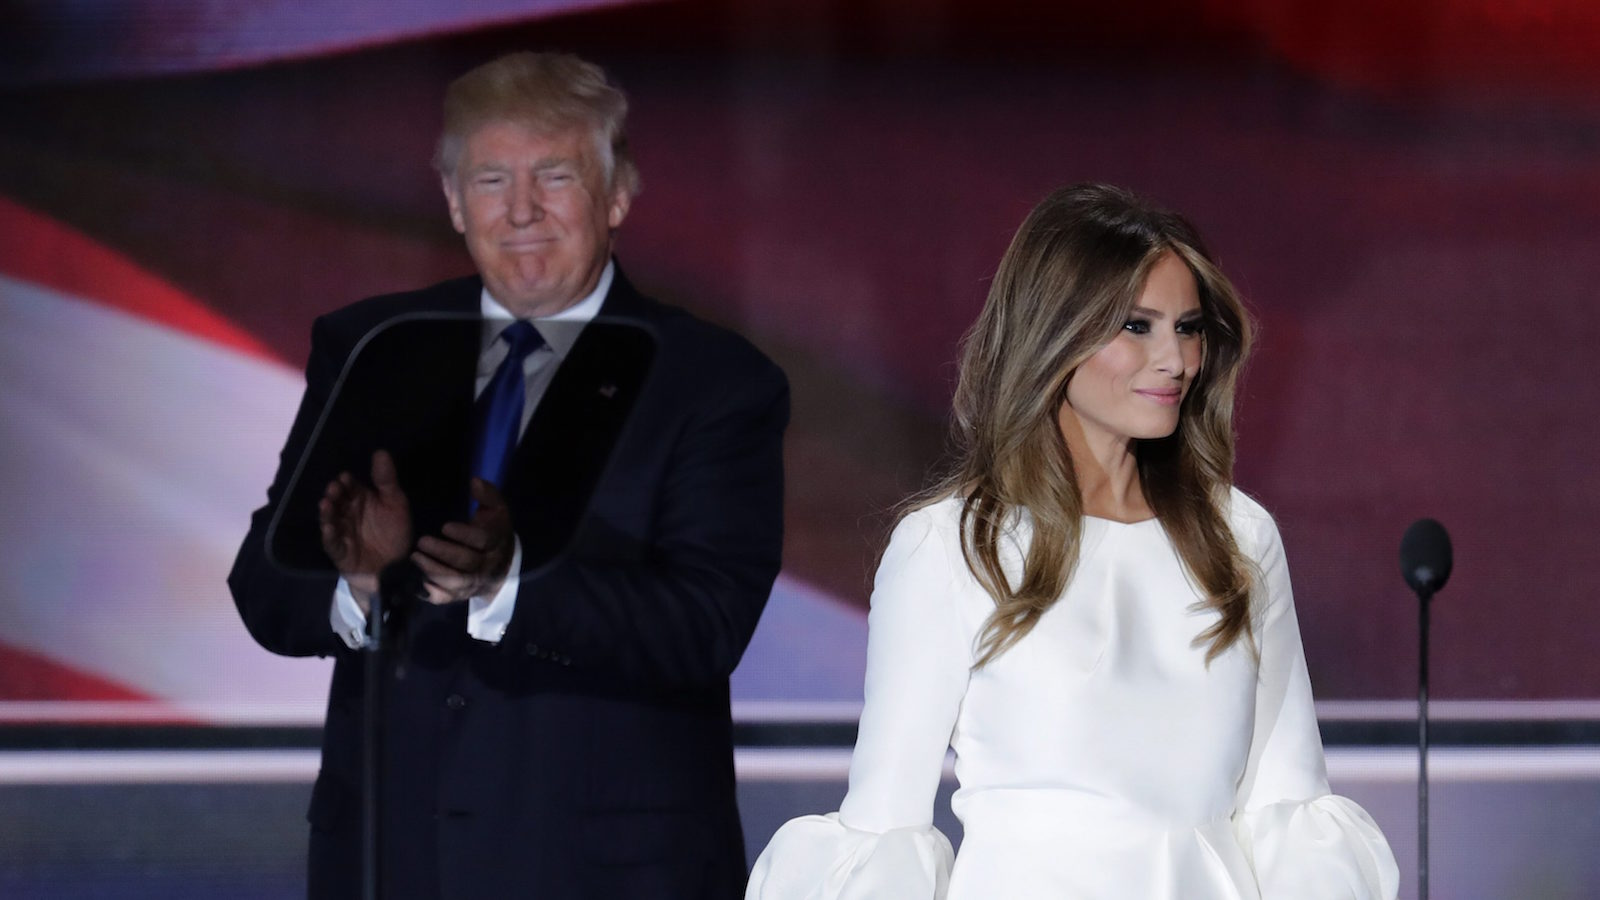 Melania Trump, wife of Republican Presidential Candidate Donald Trump walks to the stage as Donald Trump applaudss during the opening day of the Republican National Convention in Cleveland, Monday, July 18, 2016. (AP Photo/J. Scott Applewhite)